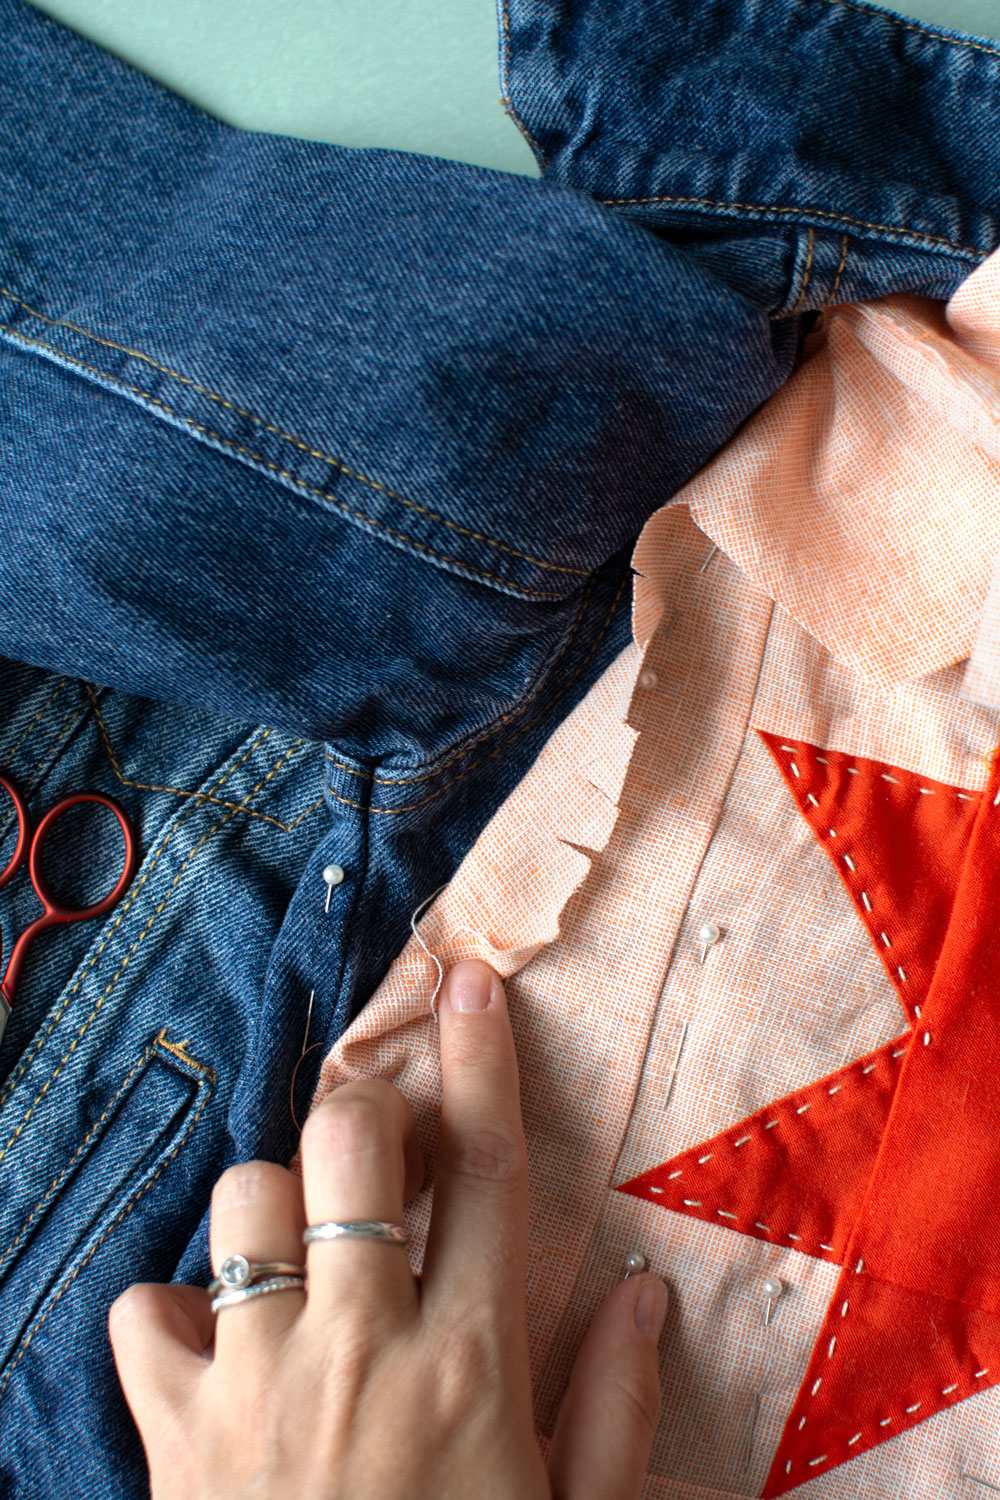 This simple patchwork jacket tutorial is the perfect way to breathe new life into old clothes. Upcycle denim or old clothing to make quilted clothing! suzyquilts.com #upcycleclothes #jackettutorial